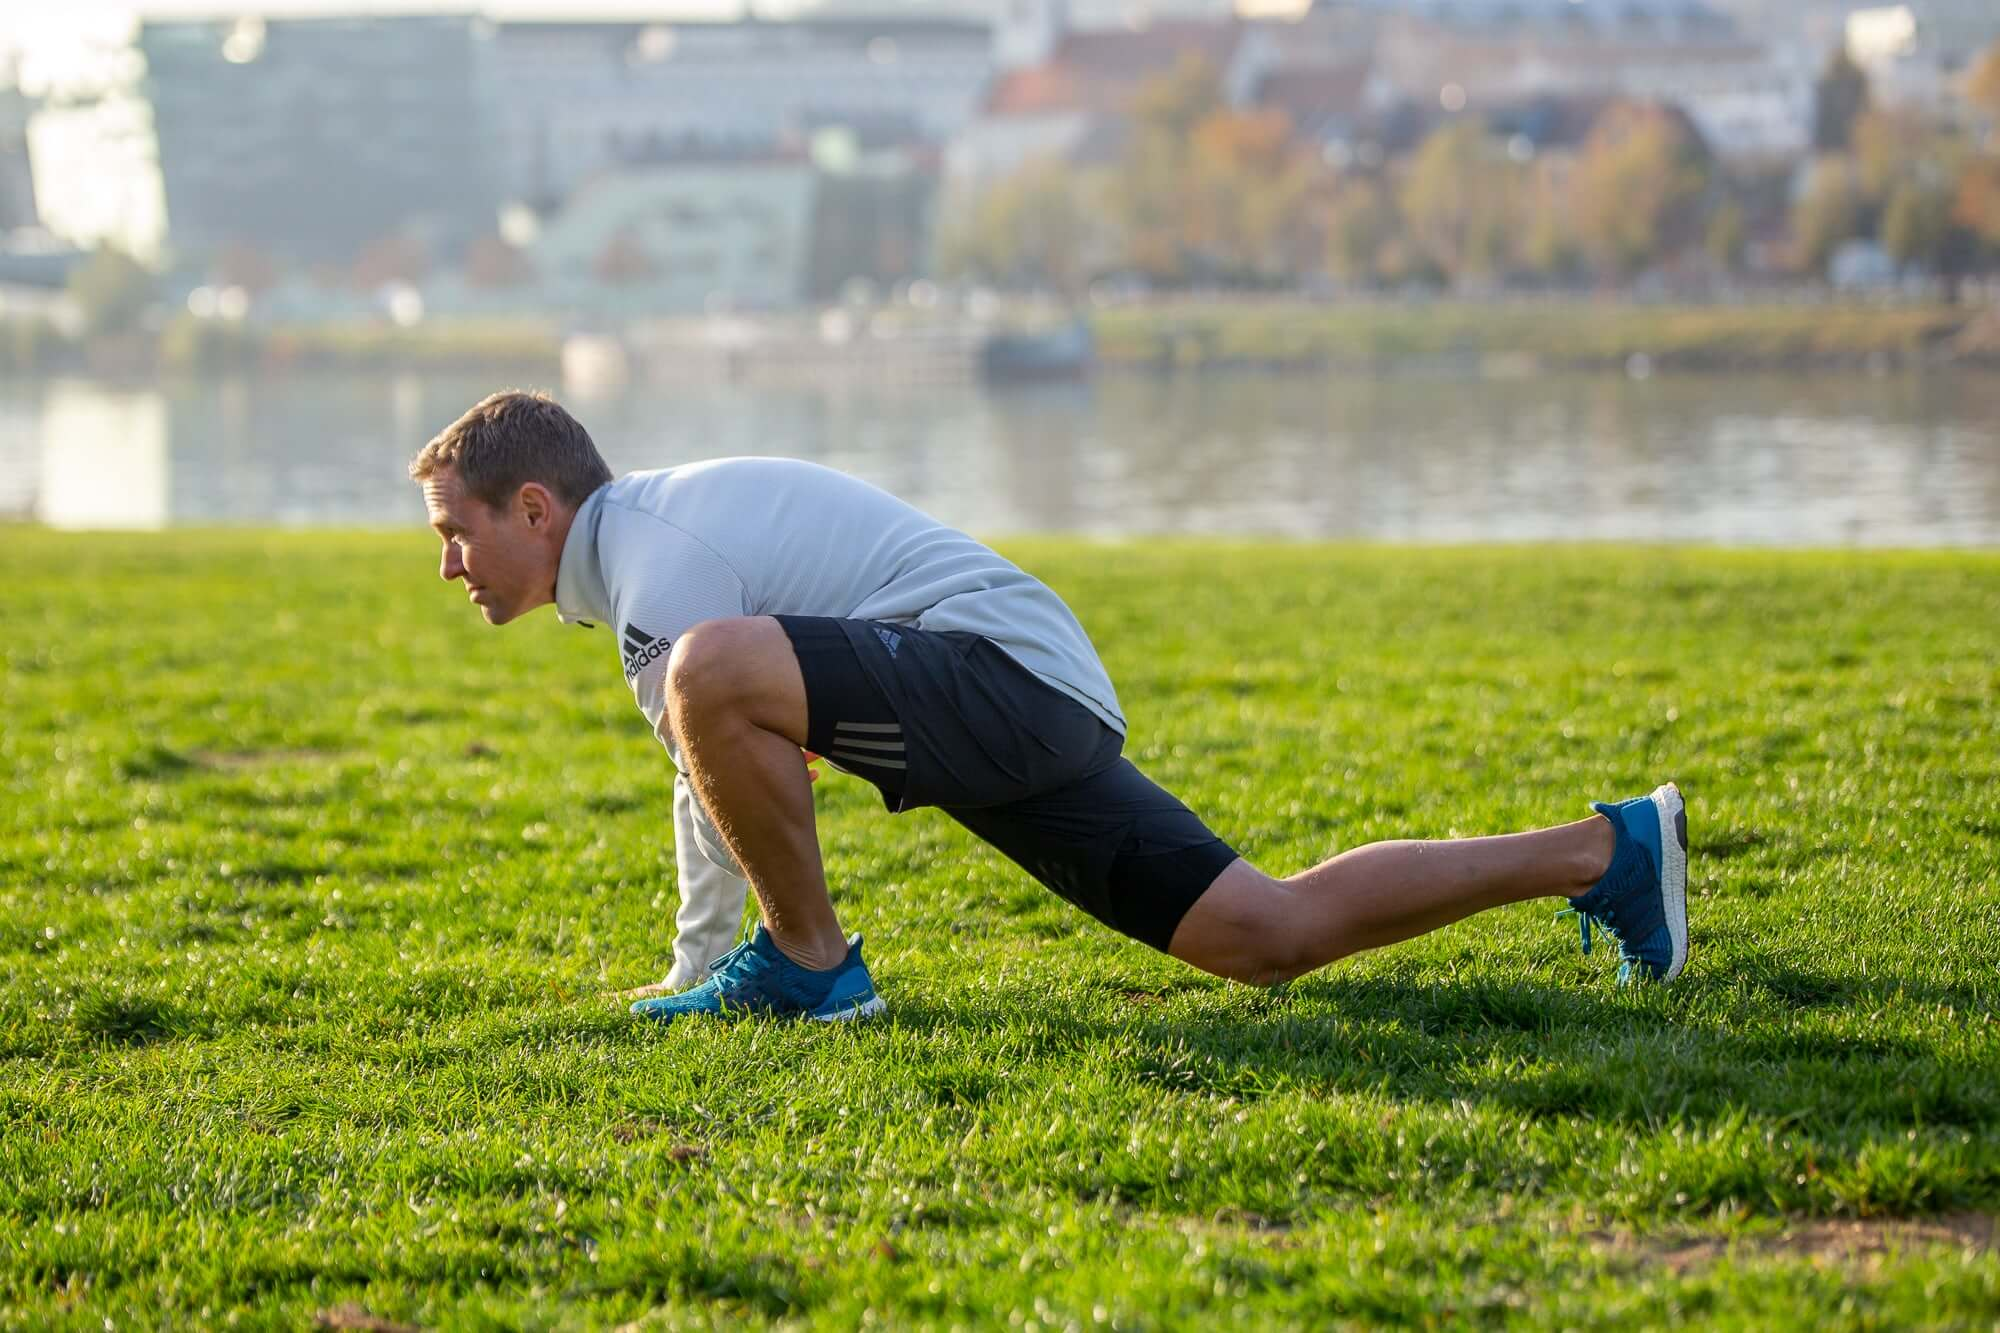 The Best Stretches for Runners to Warm Up and Cool Down